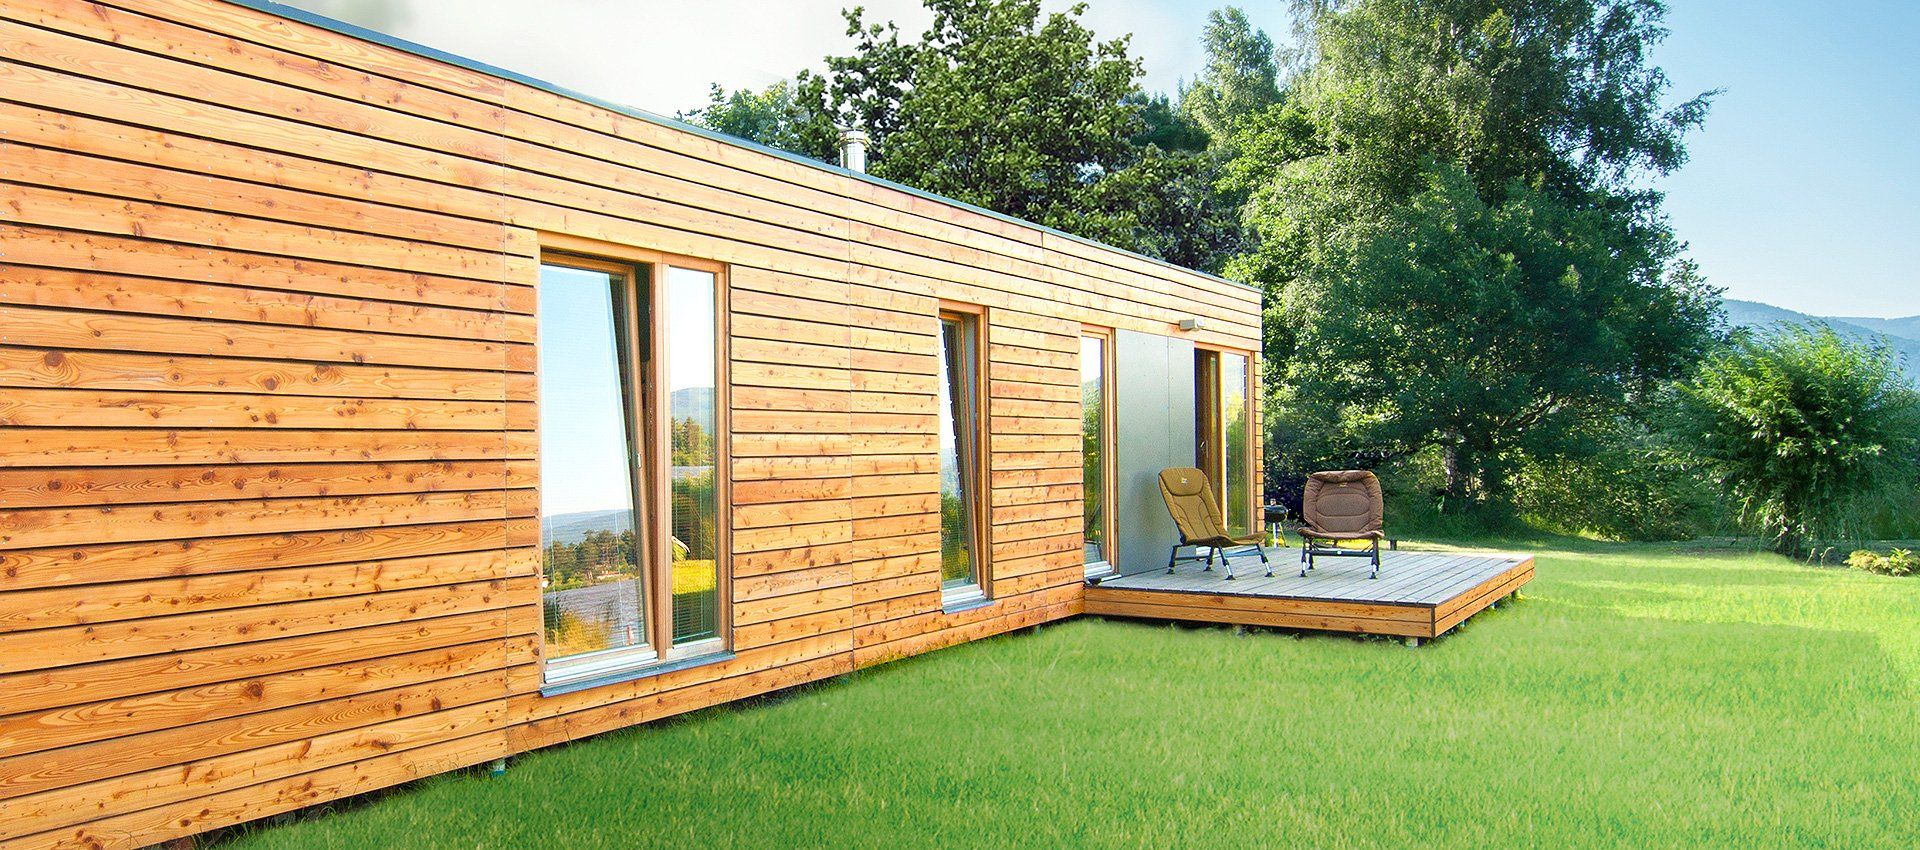 Design gartenh user moderne holzbauten naturhouse for Moderne wohncontainer